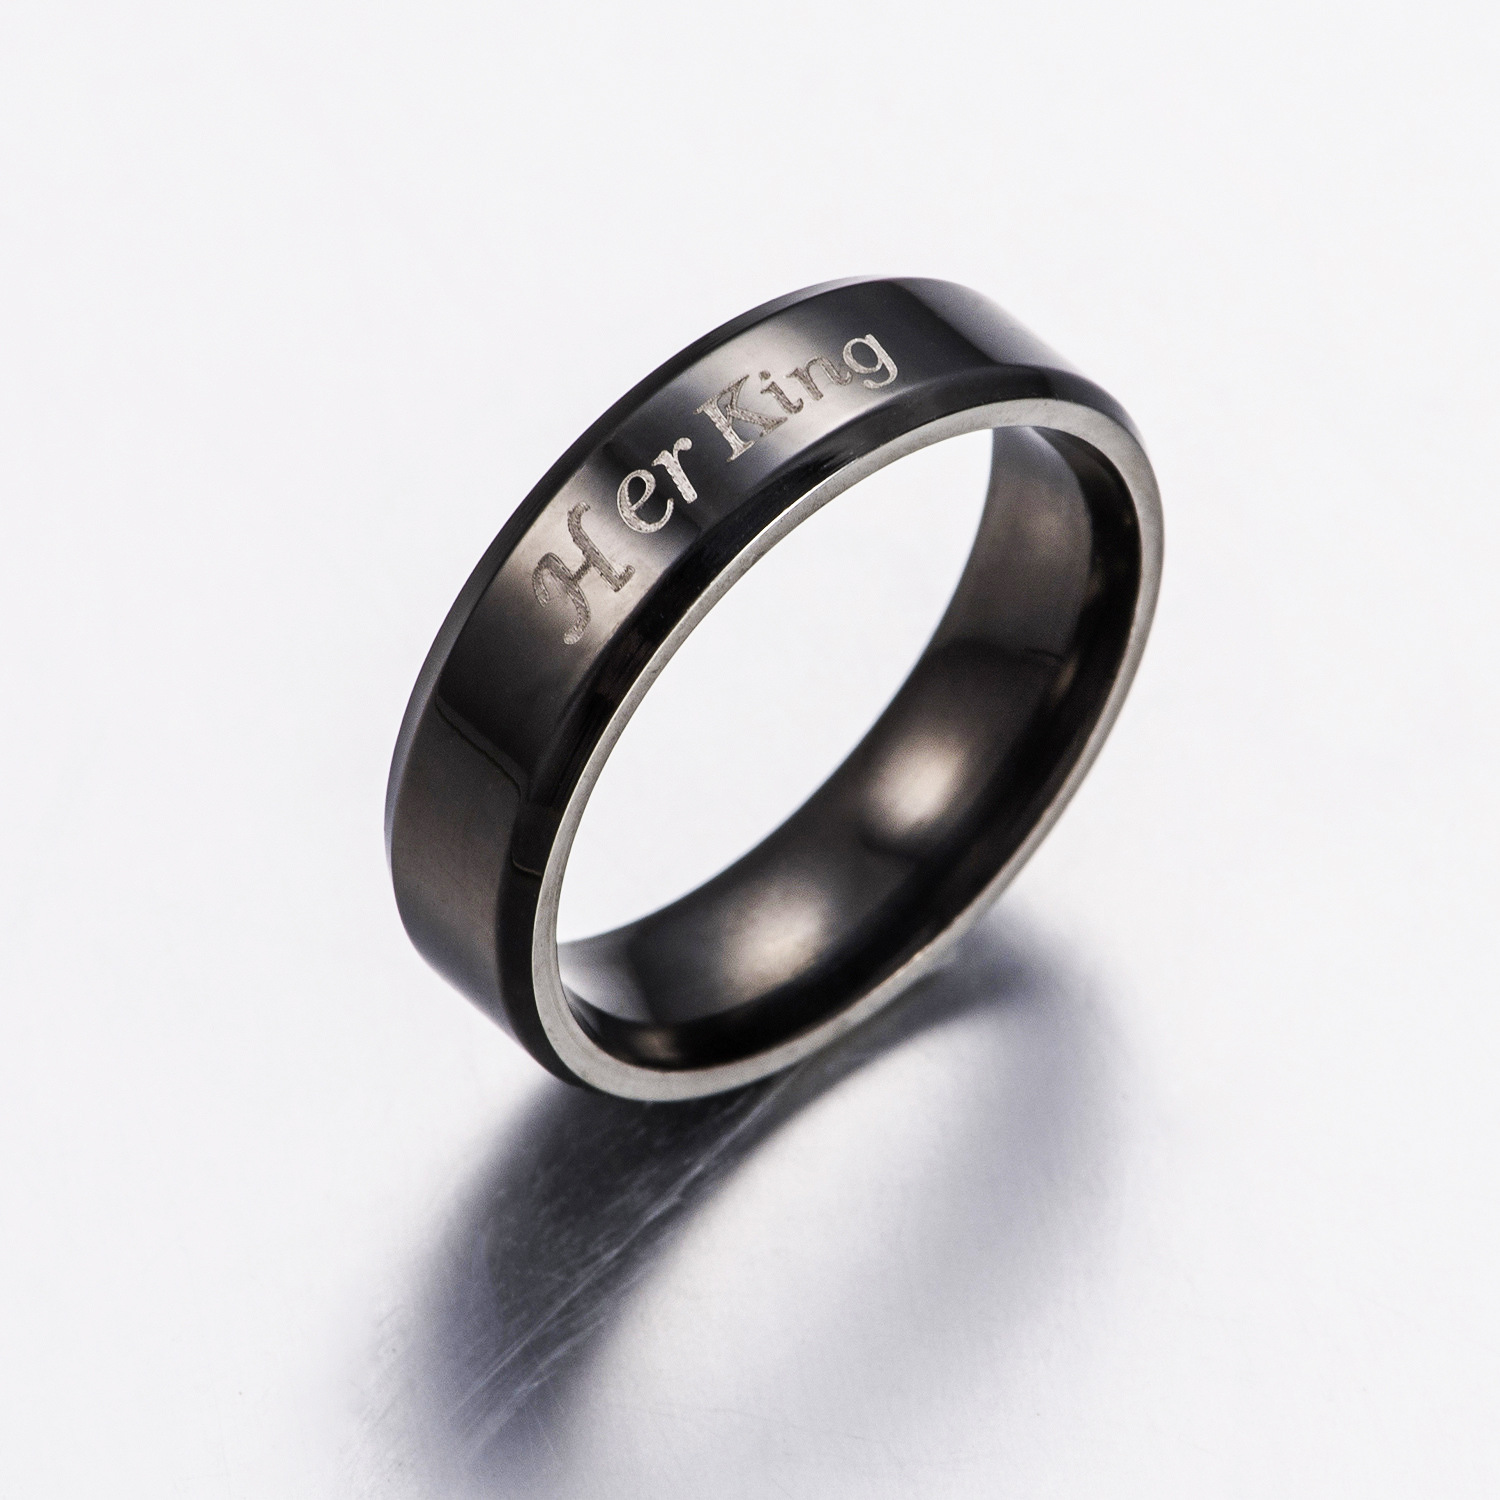 Fashion Jewelry Black Color Stainless Steel Couple Rings \